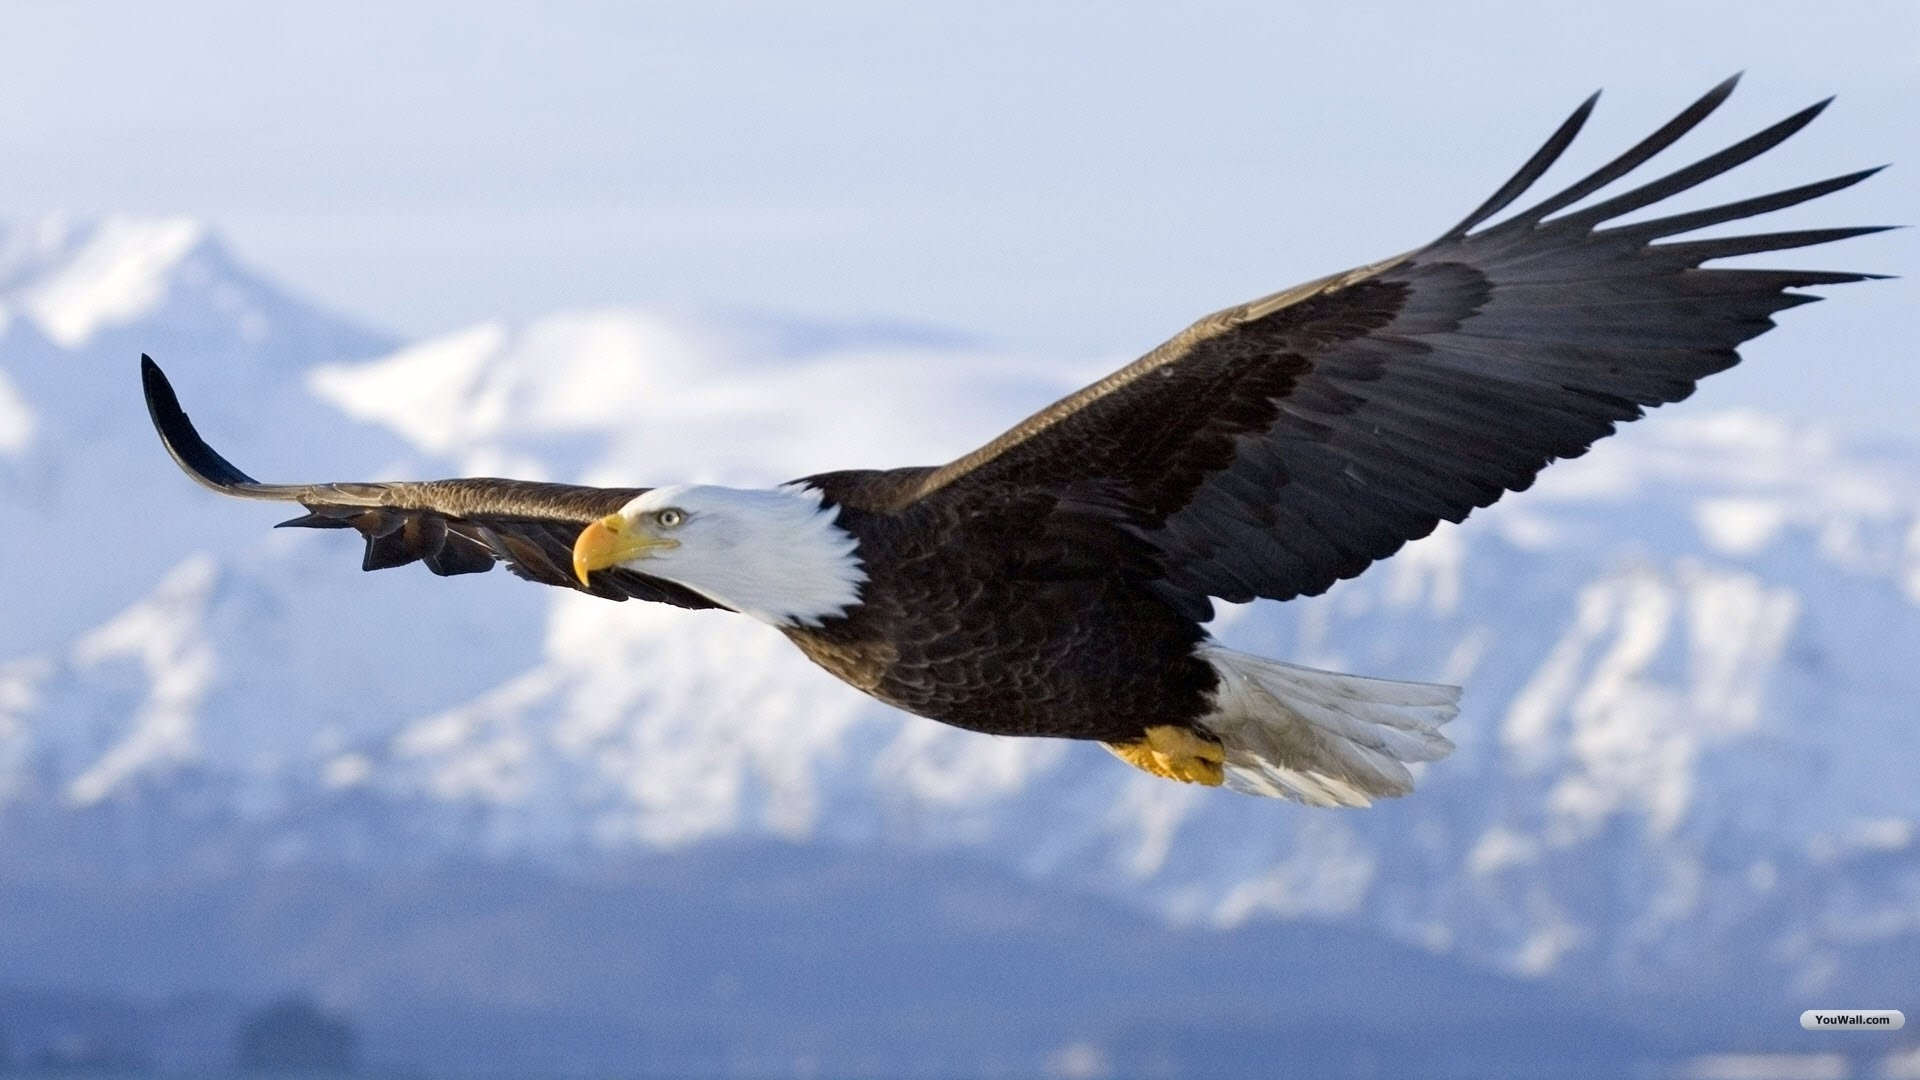 pictures of eagle flying | flying eagle wallpaper 1920x1080 (236 kb